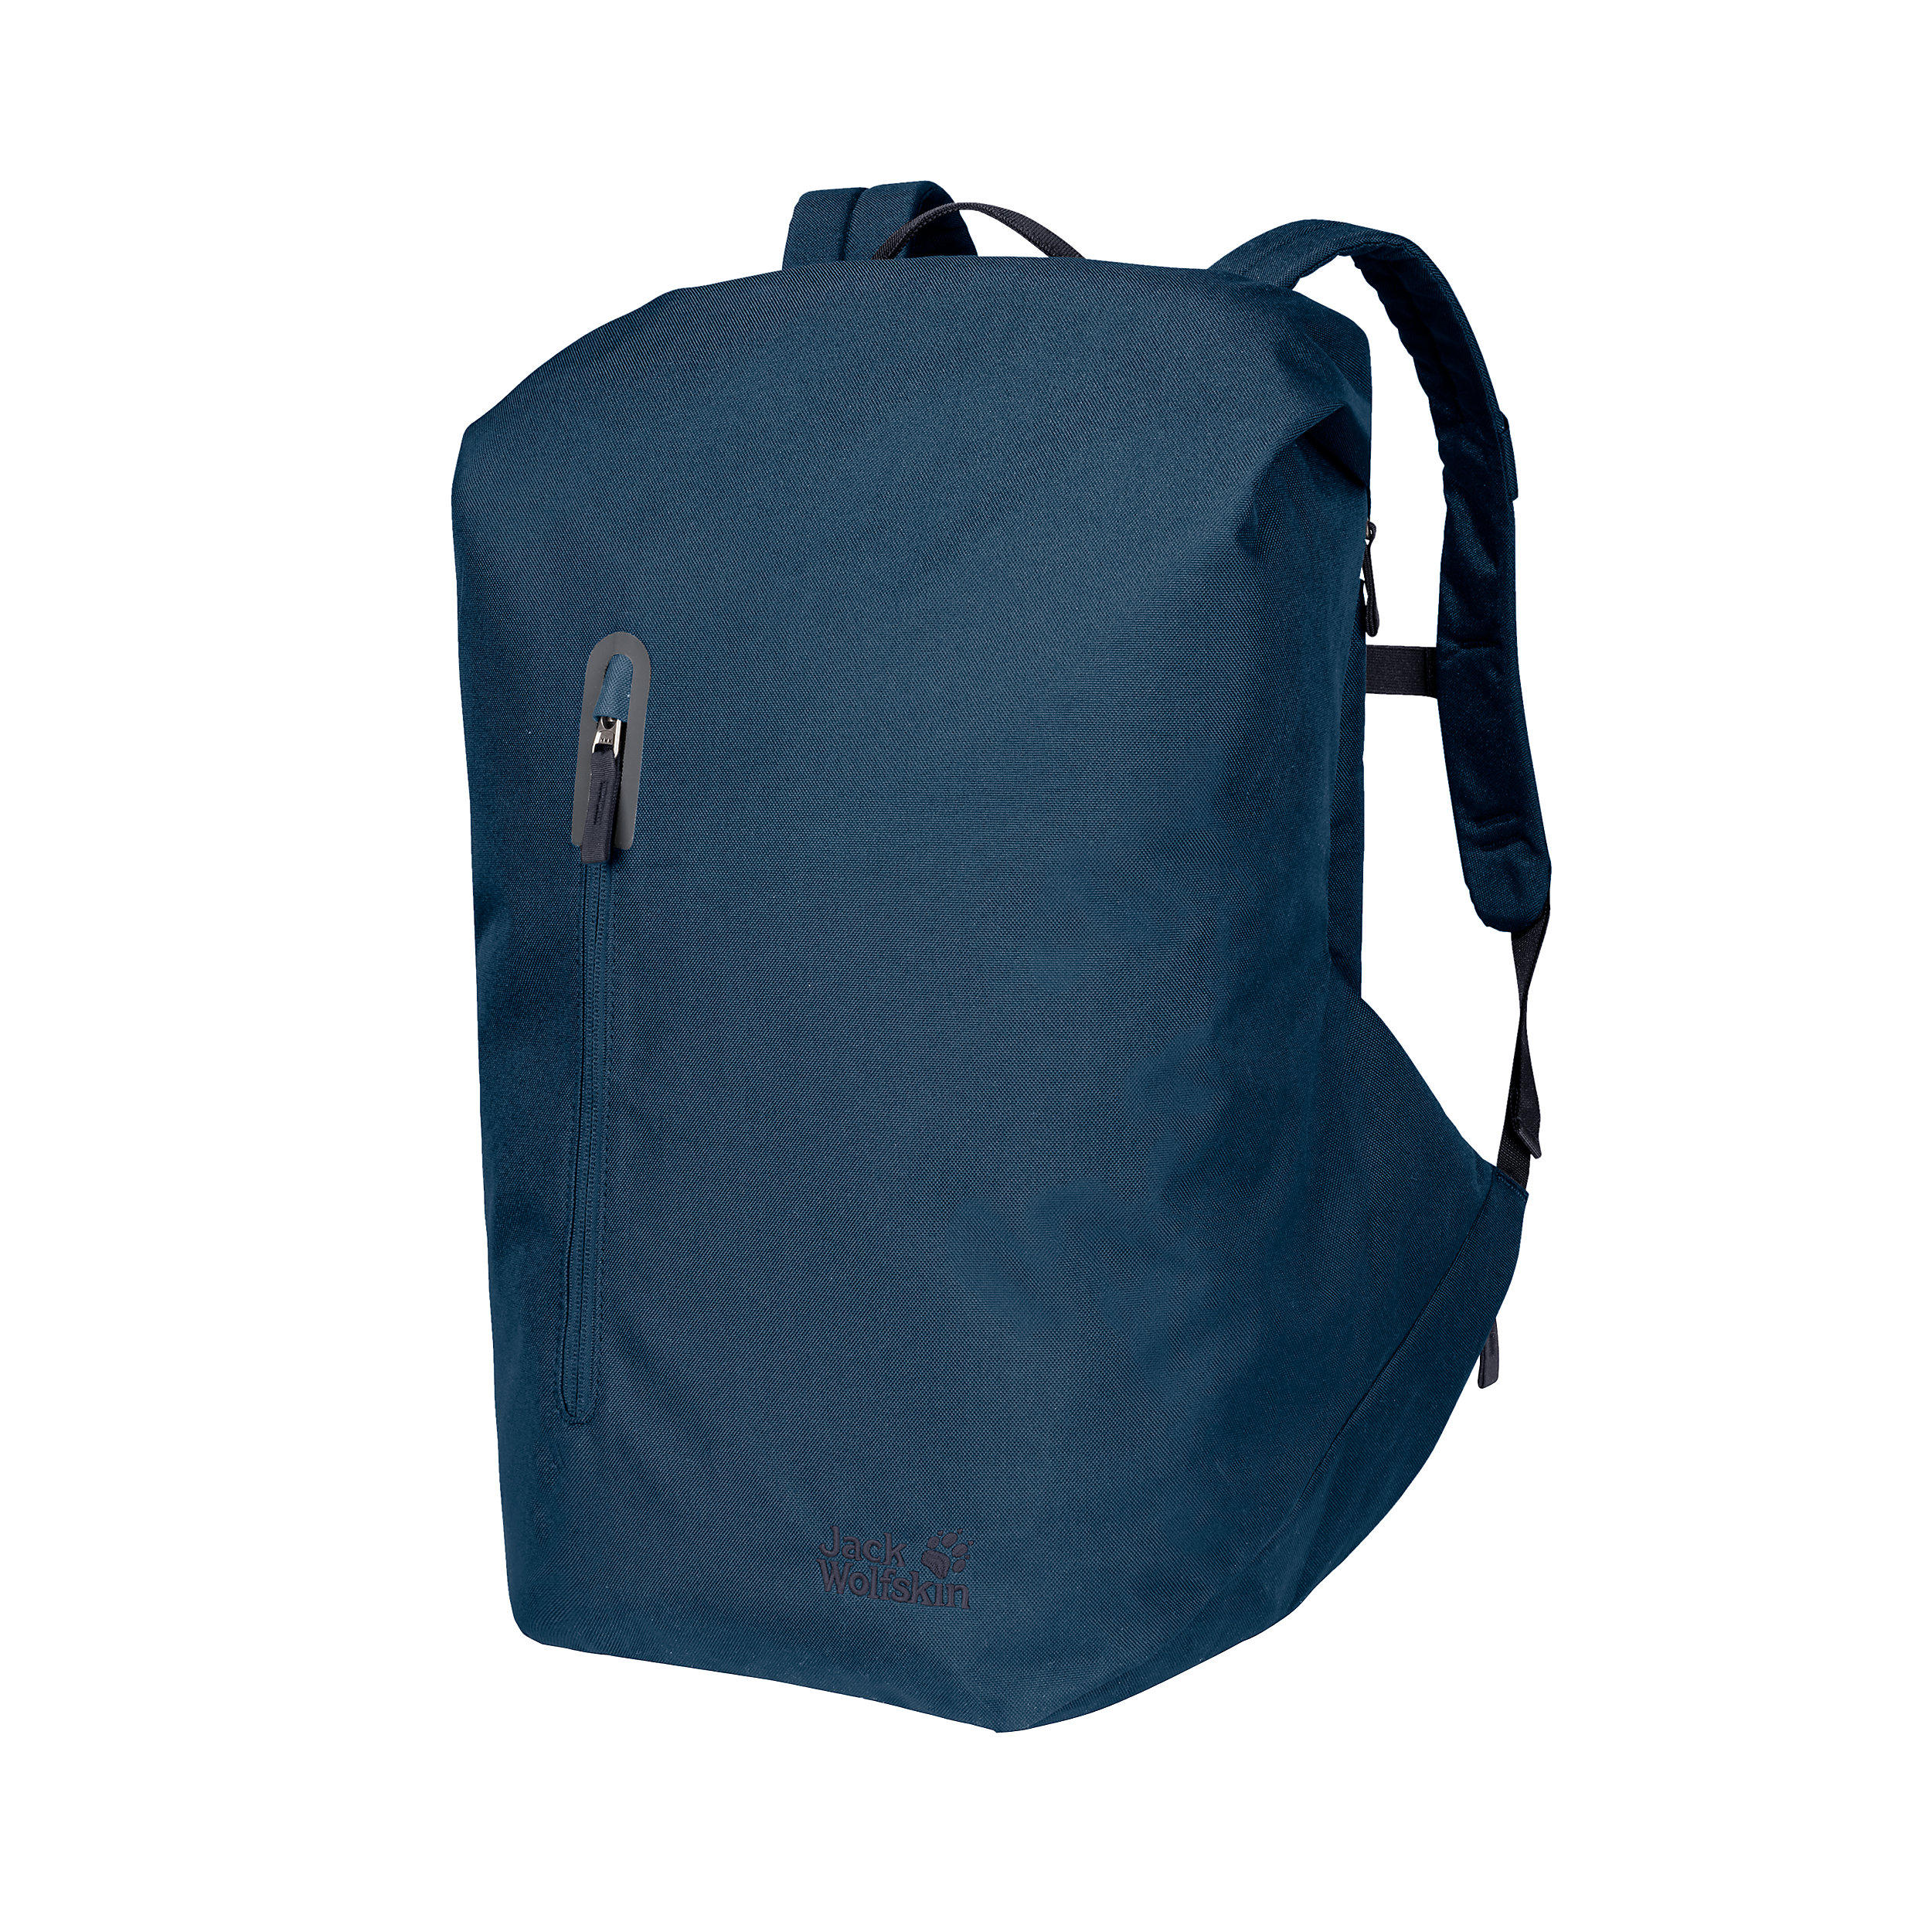 "Backpack Coogee 15"" Everyday Outdoor L 28 Liter"